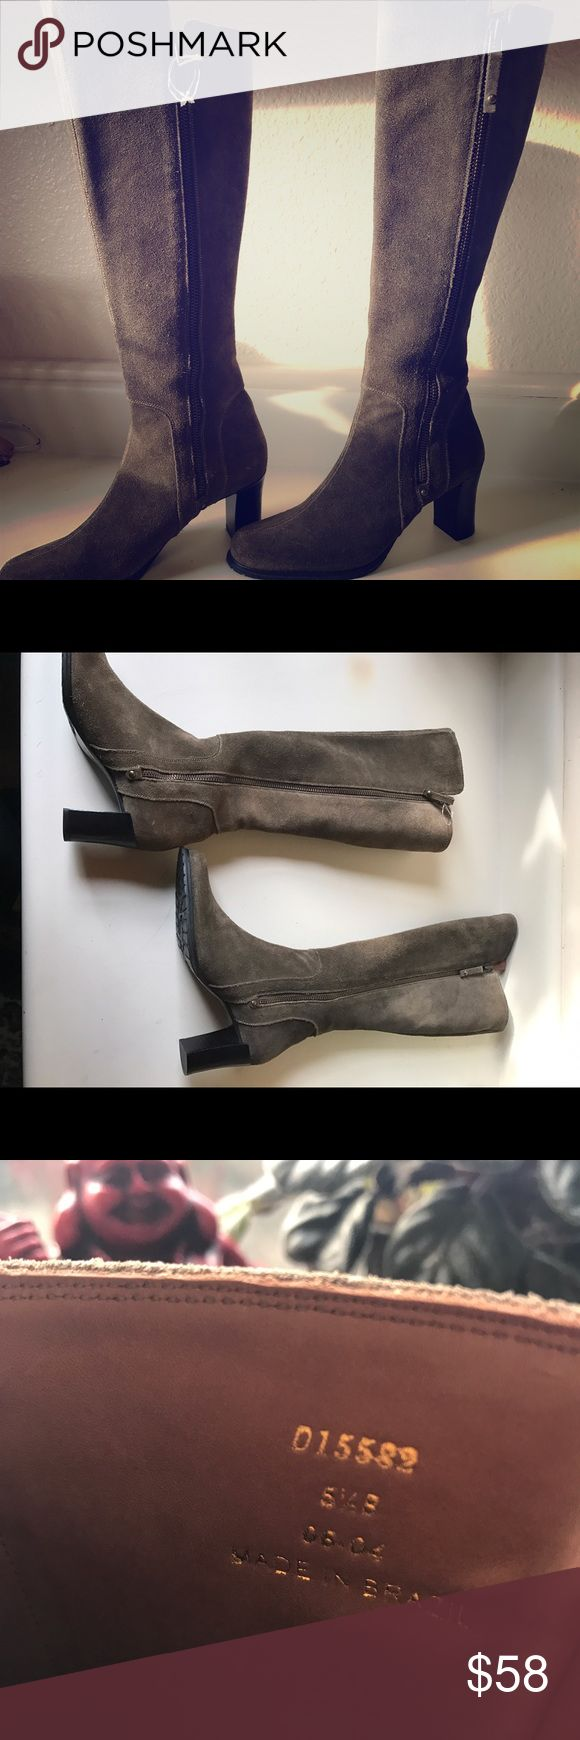 """Cole Haan suede knee high boots with heel 5 1/2 These boots are NWOT, and are a brownish/grayish/olive color. Suede. 3"""" heel. Functioning zippers on both sides of boots. Vibram rubber tread on soles. Cole Haan Shoes Heeled Boots"""